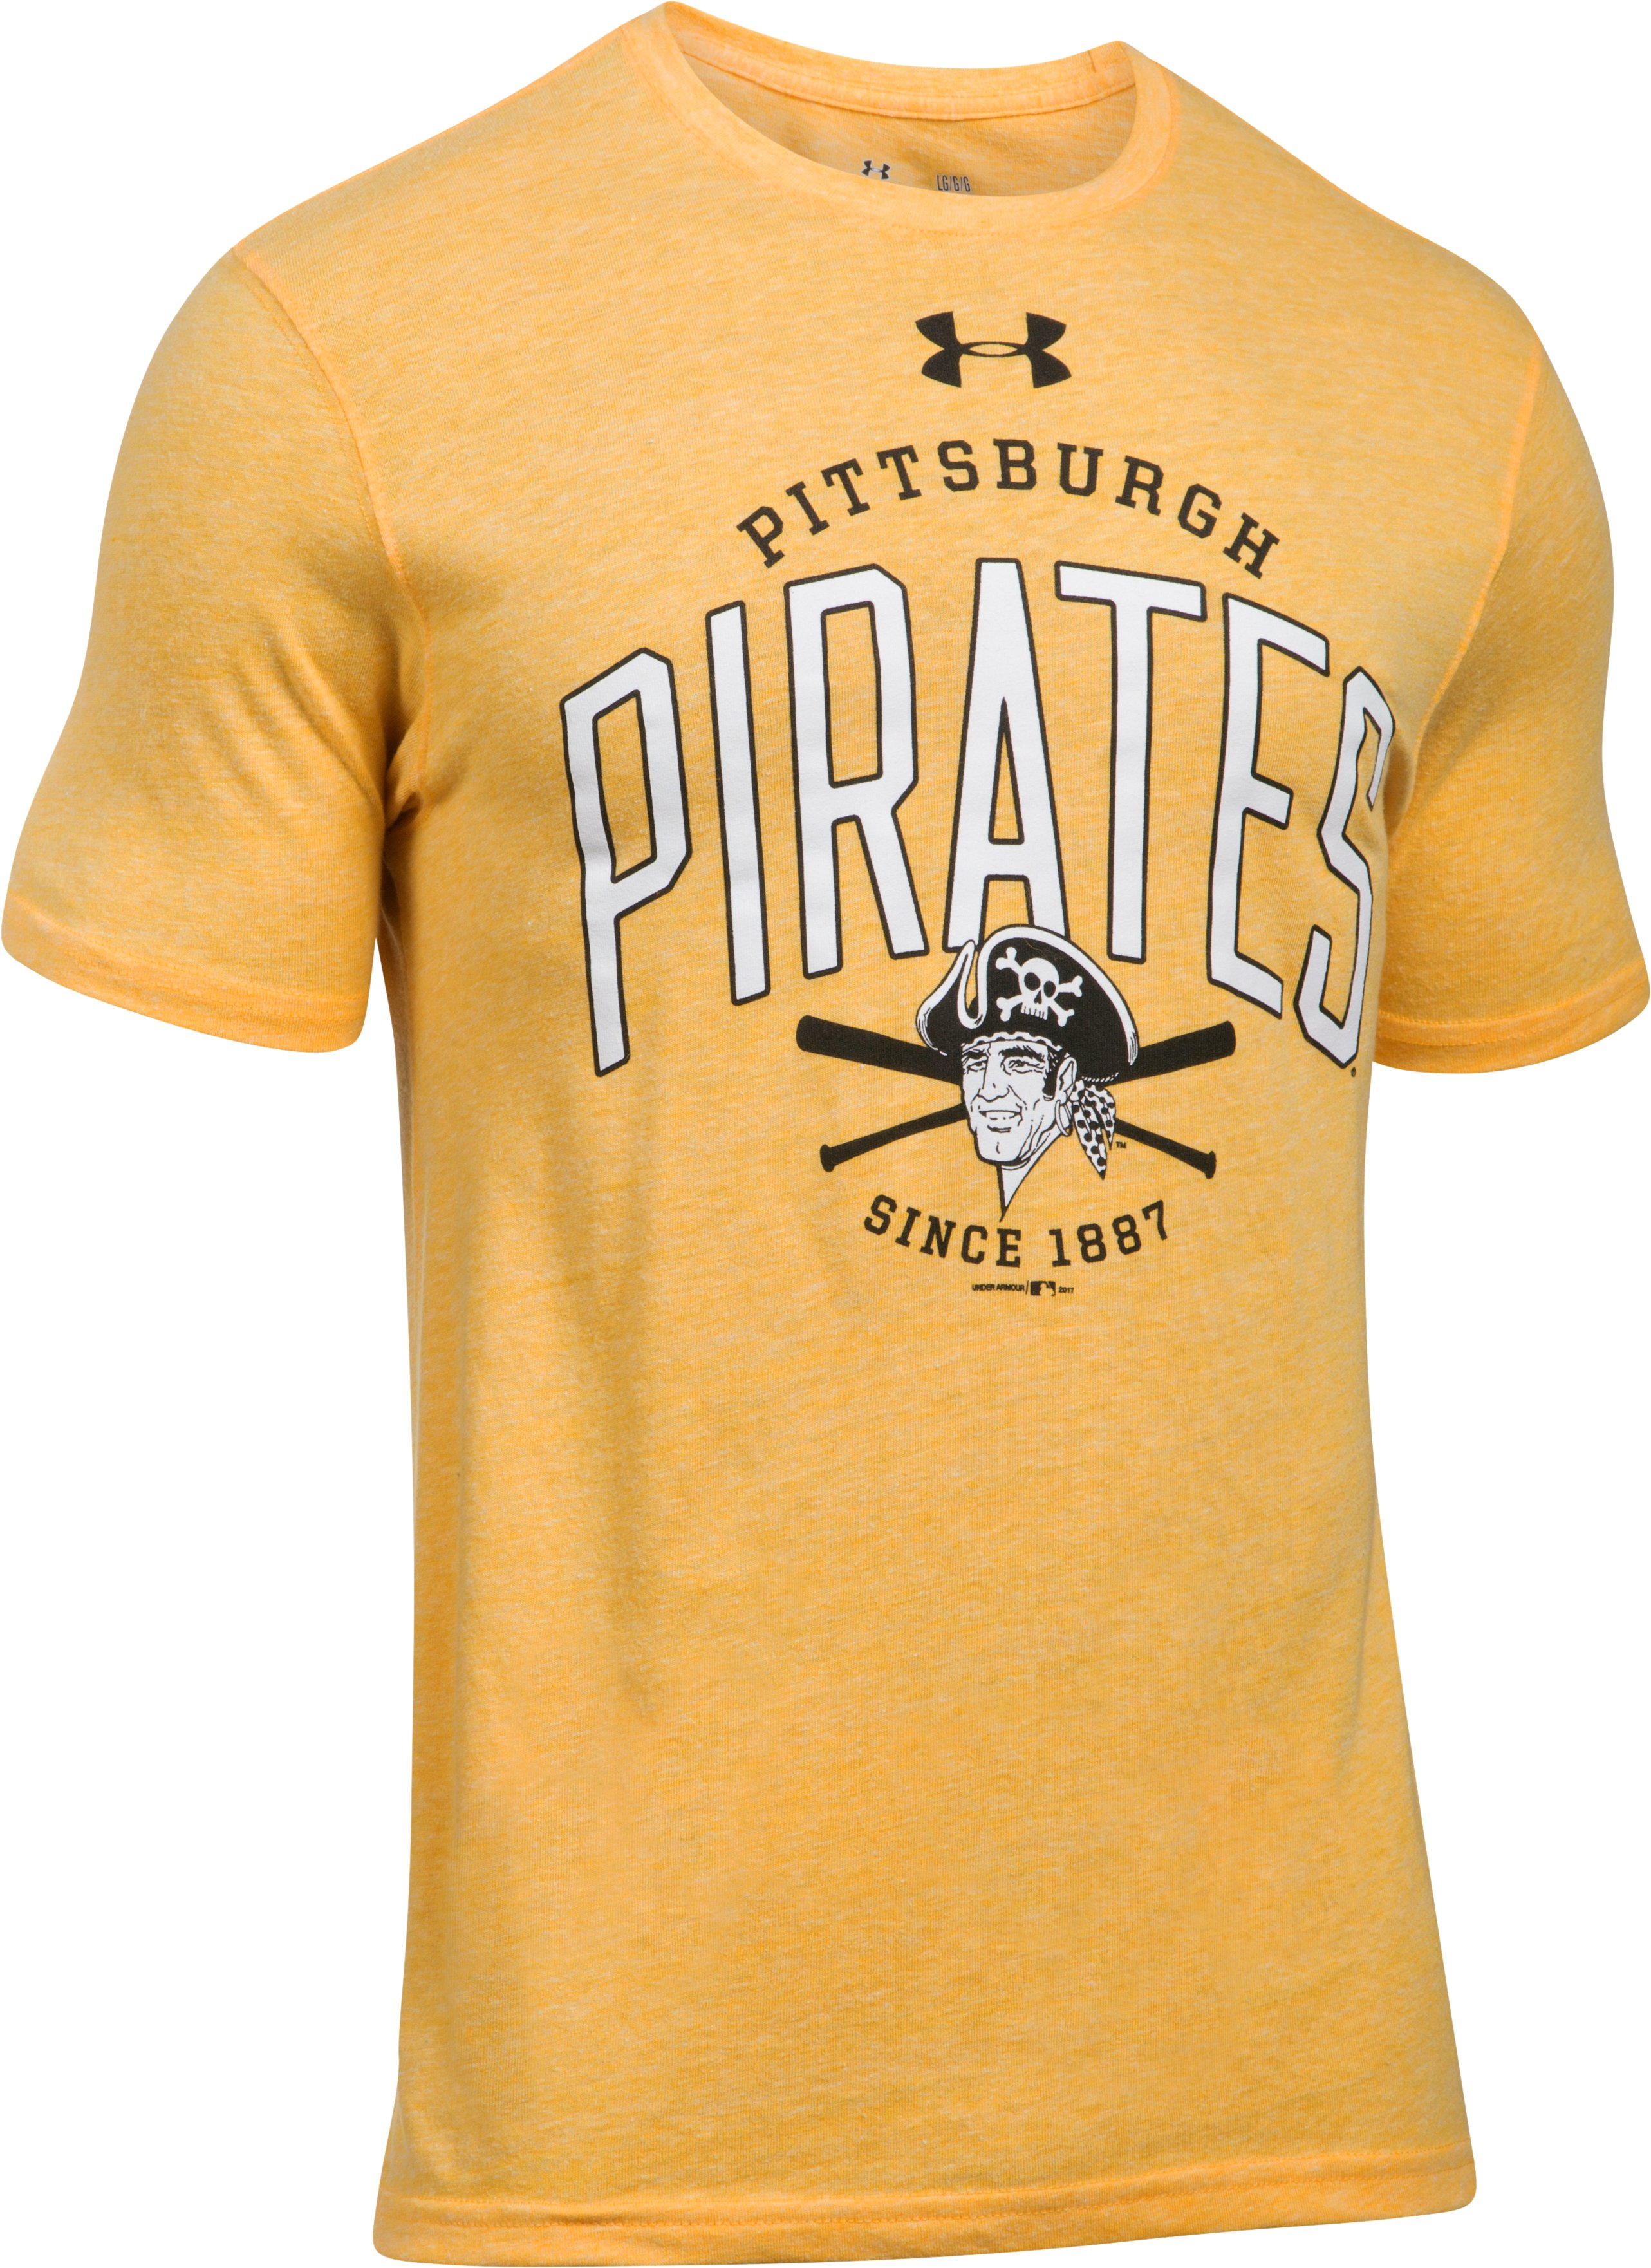 Men's Pittsburgh Pirates Tri-Blend T-Shirt, Steeltown Gold,